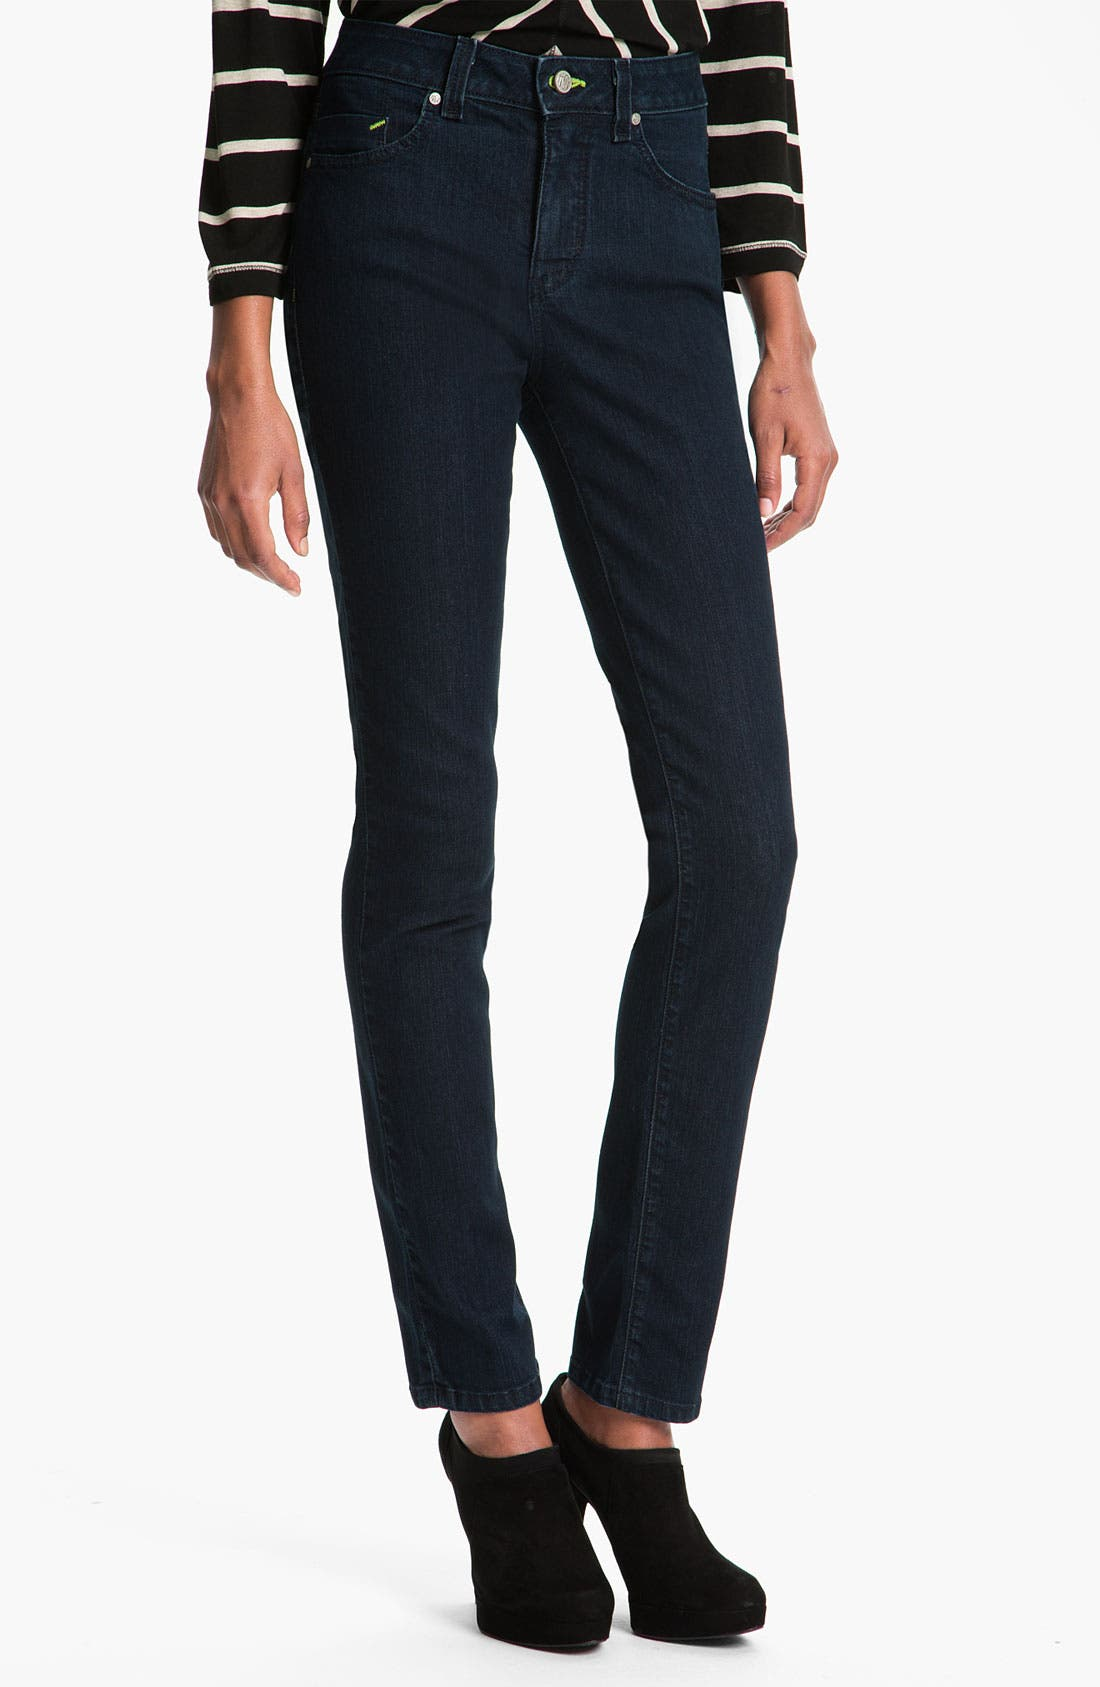 Main Image - Miraclebody 'Betty' Skinny Stretch Jeans